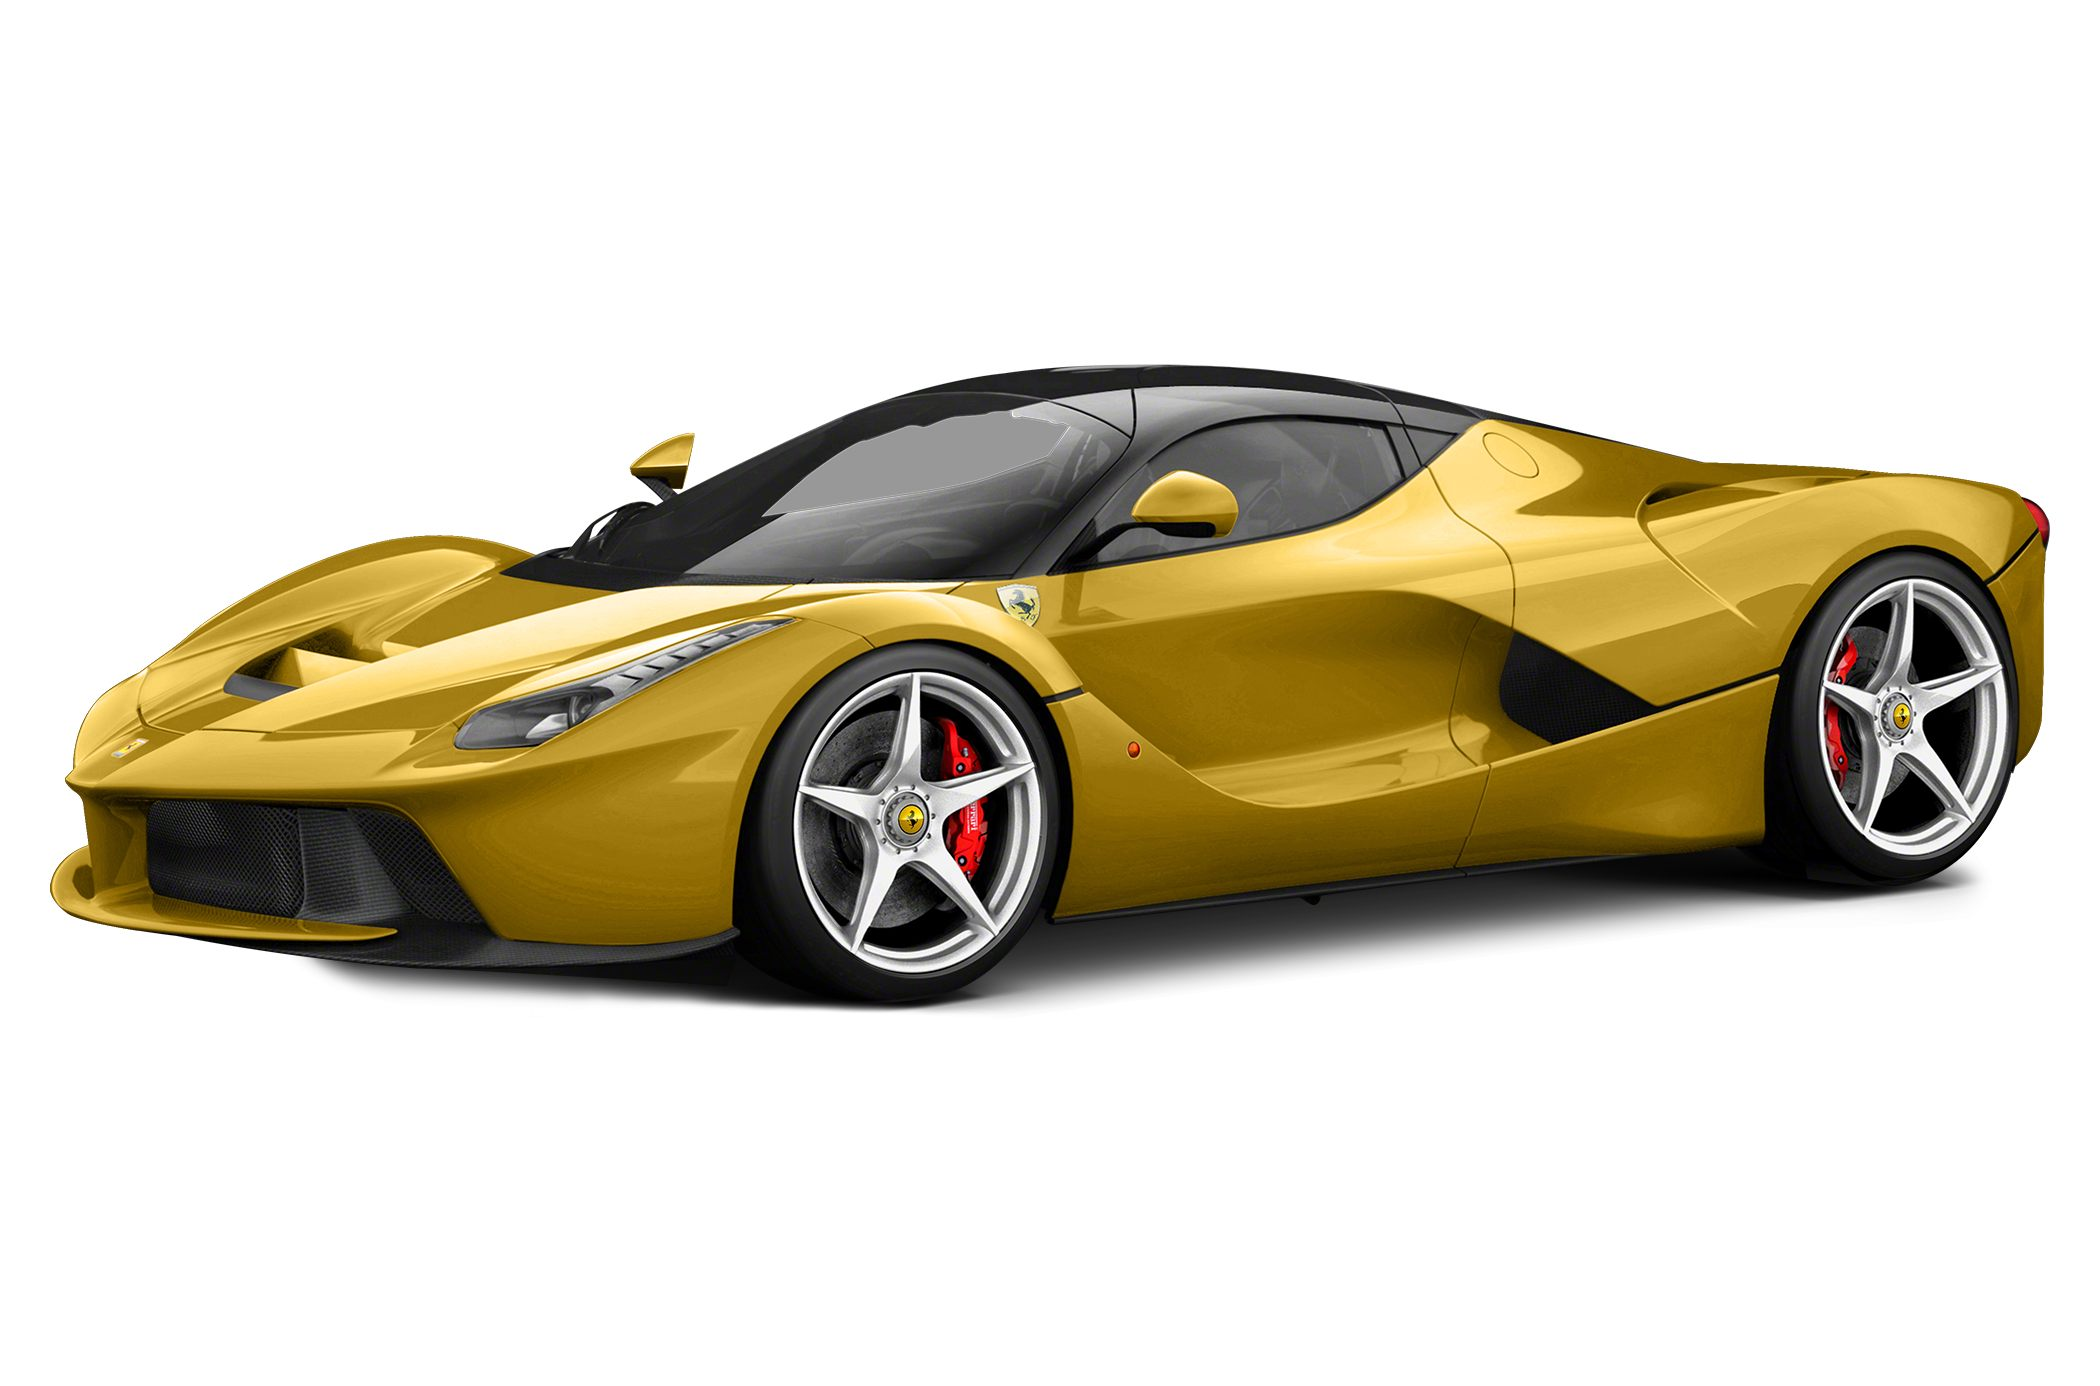 Ferrari Of Fort Lauderdale >> Ferrari wants more hybrids to lift volume to 10,000 cars a year - Autoblog